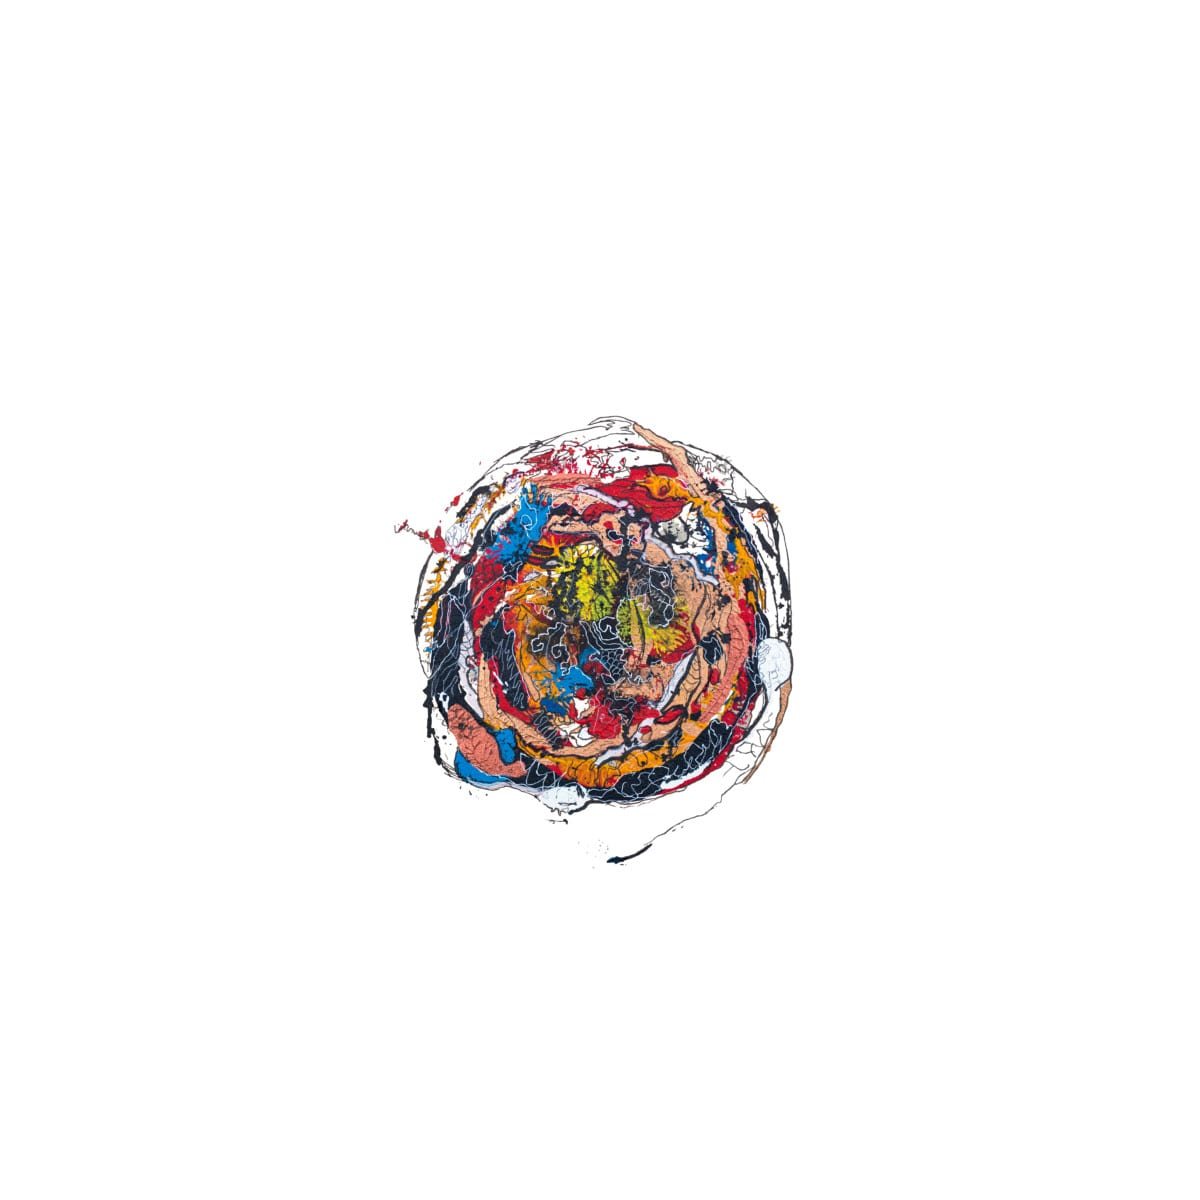 mewithoutYou [untitled] EP